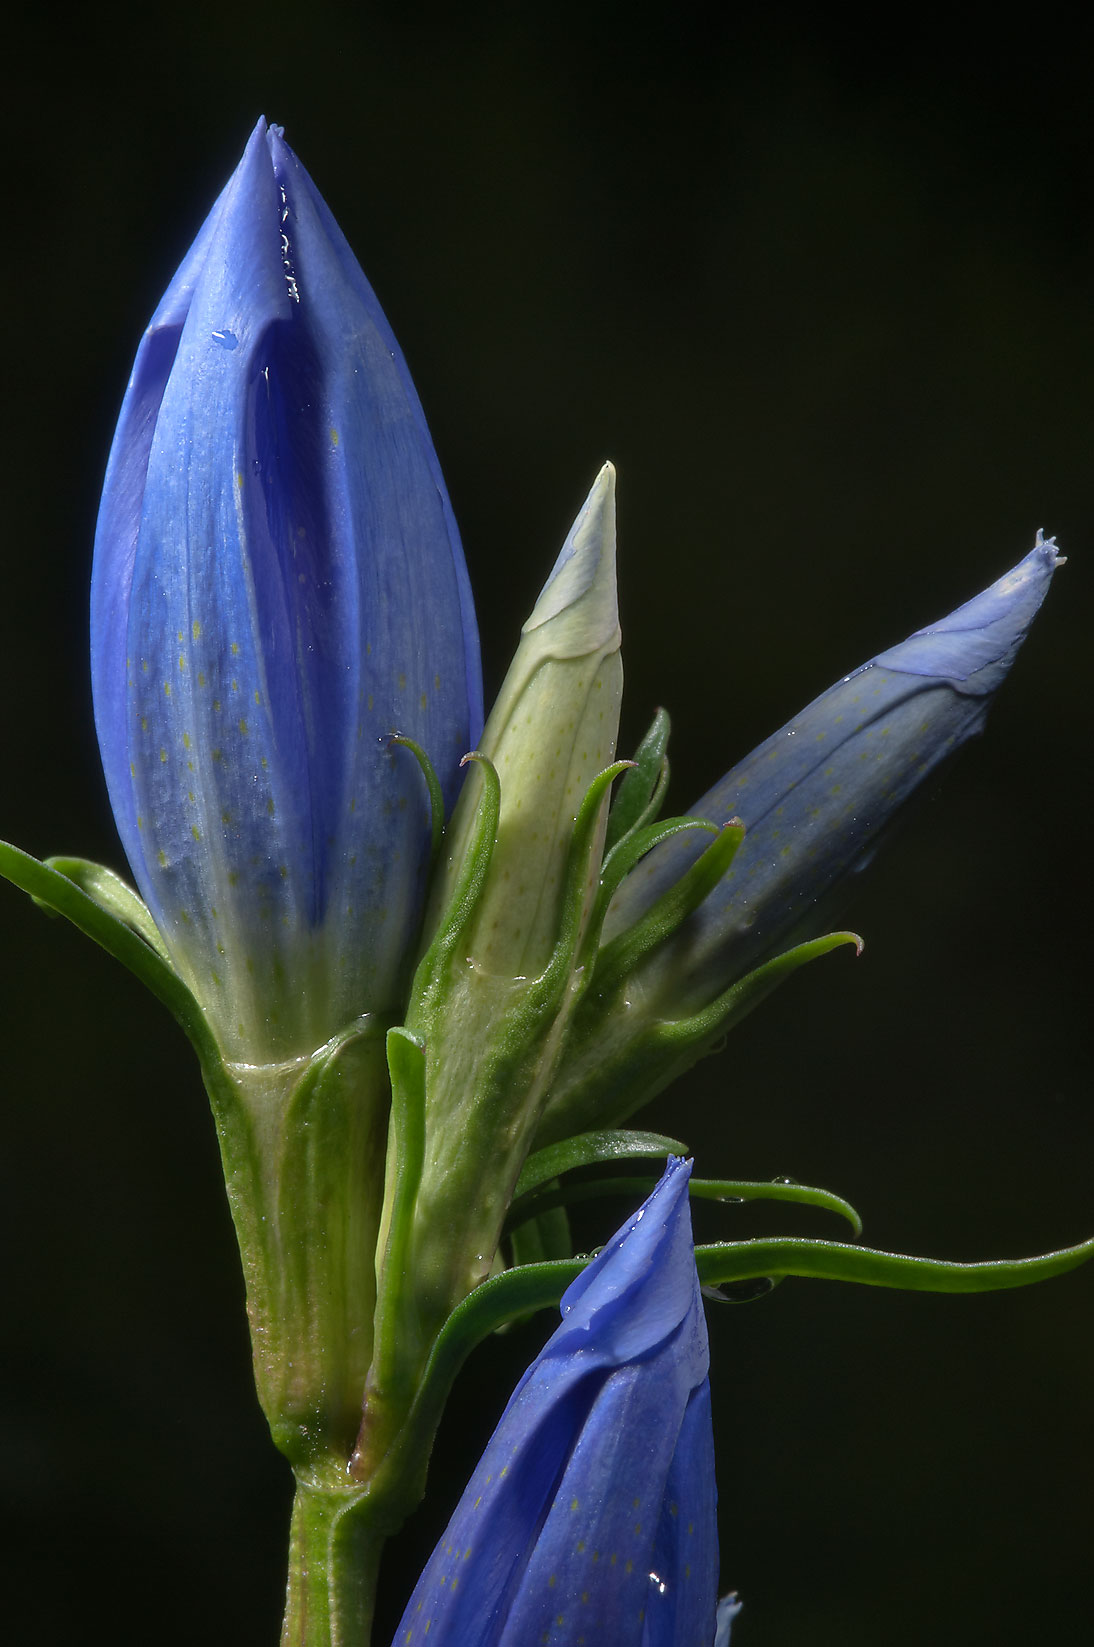 Gentian flower buds in Botanic Gardens of Komarov...Institute. St.Petersburg, Russia